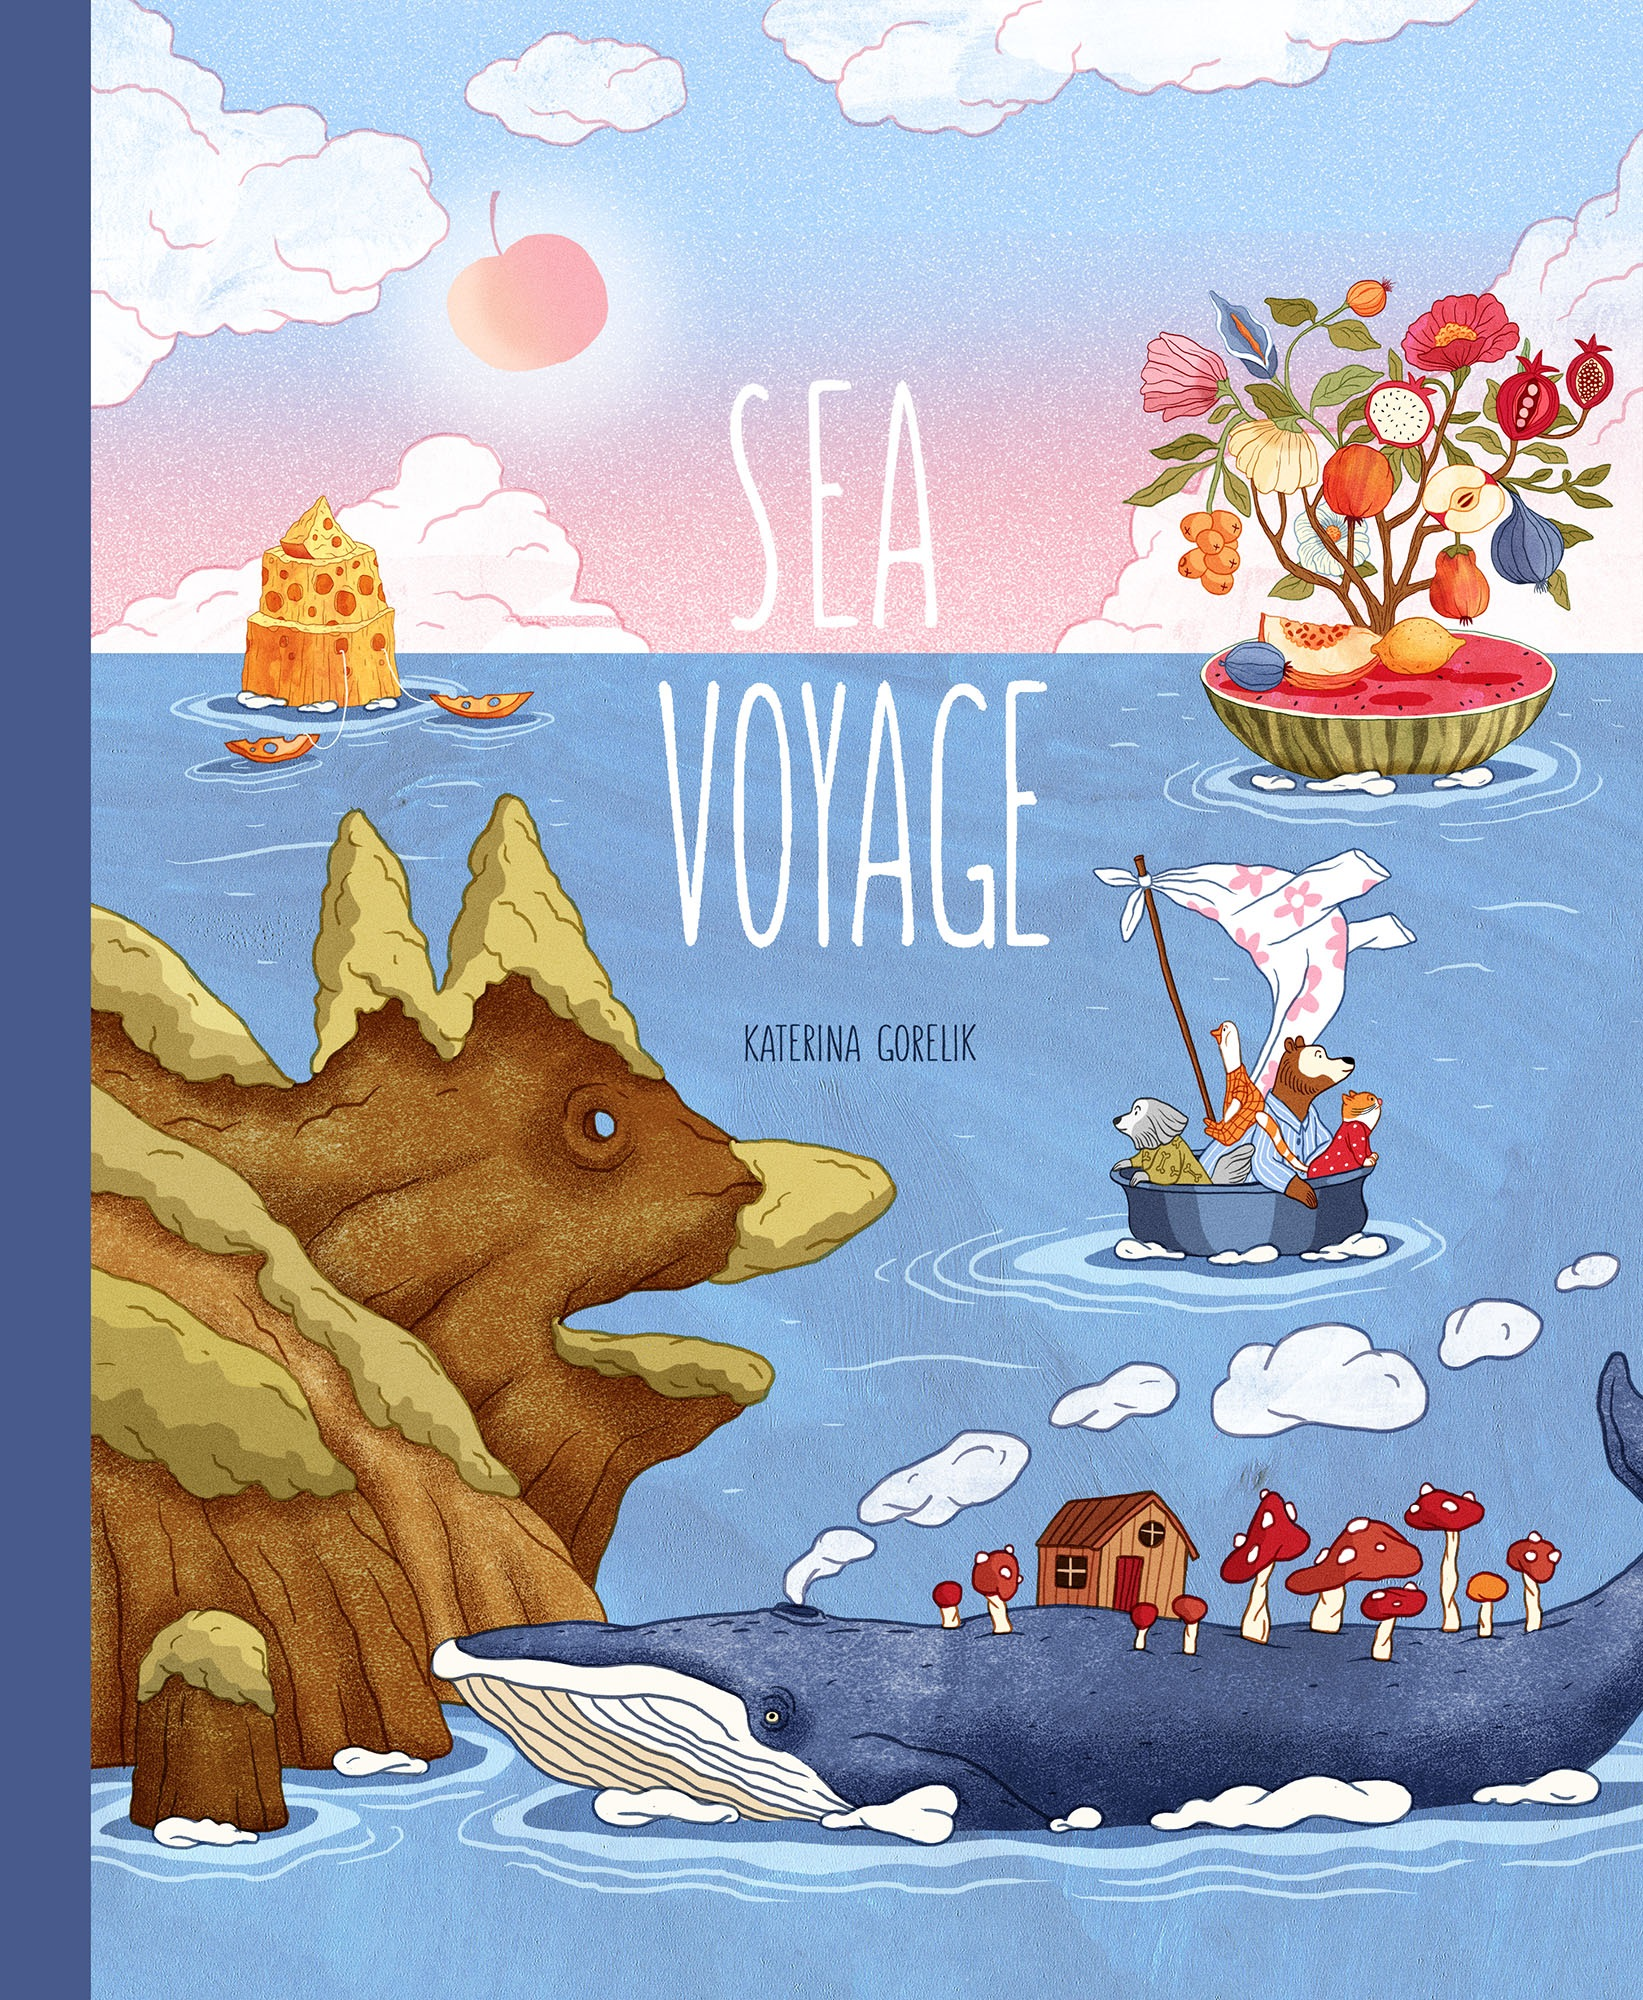 katerina sea voyage cover final